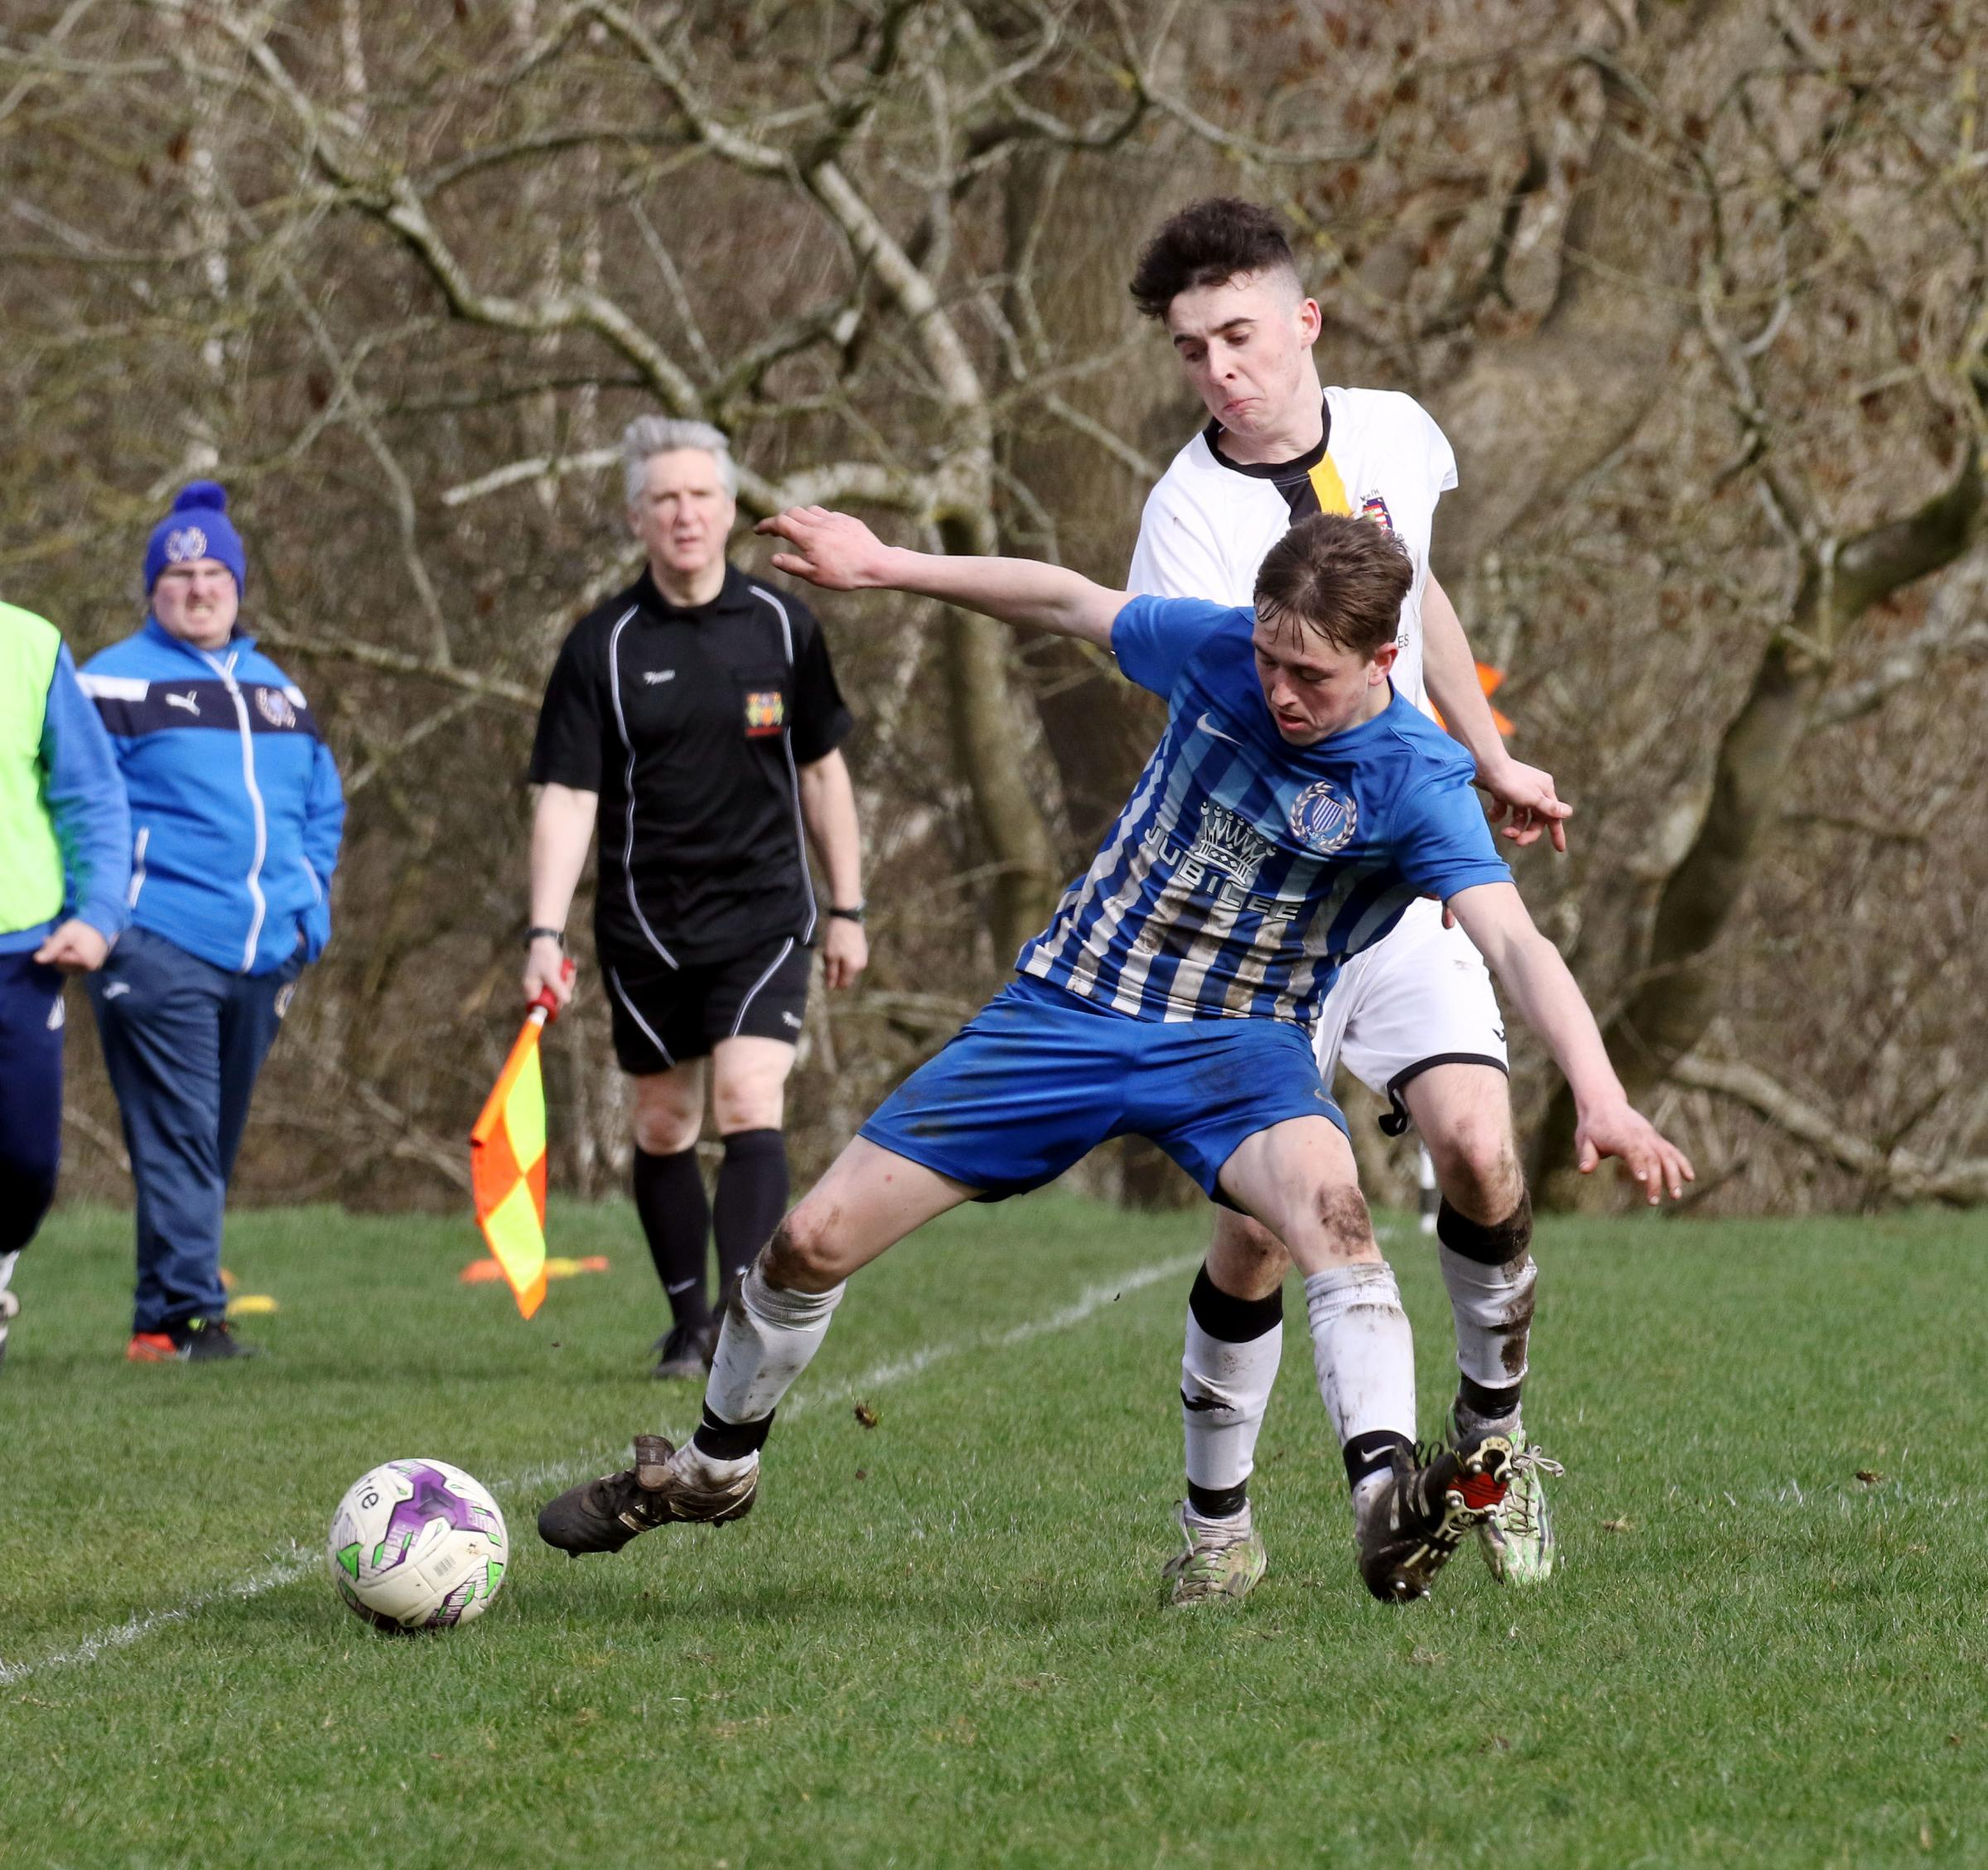 Goal scorer Jack Barker was Haltwhistle's man of the match. Photo: PAUL NORRIS